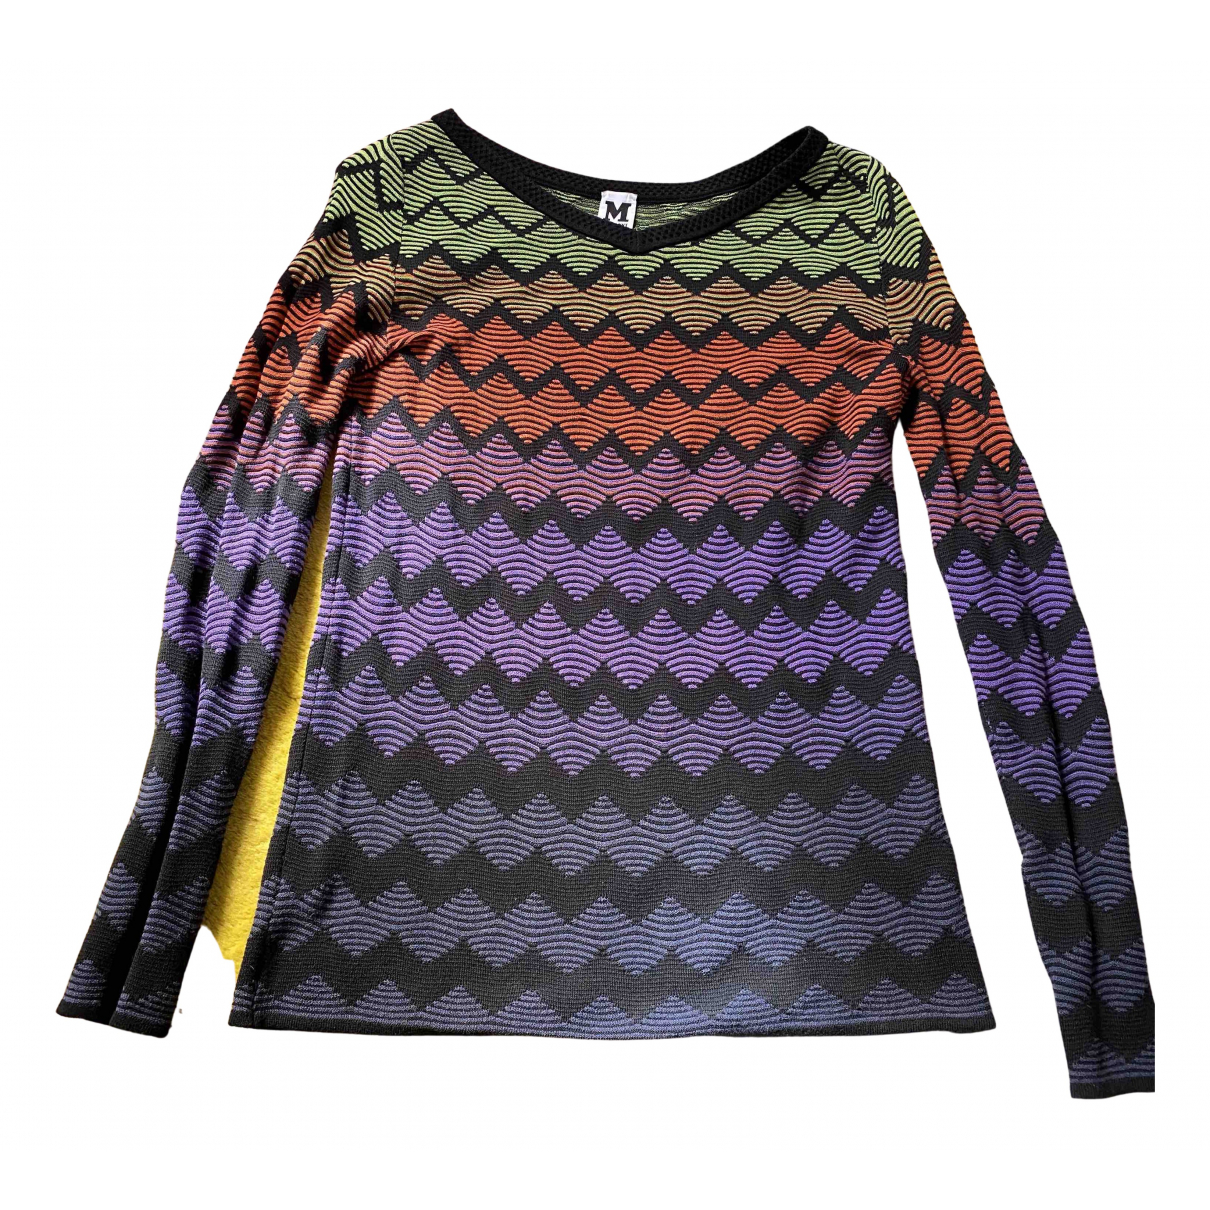 M Missoni N Black Cotton Knitwear for Women 42 IT